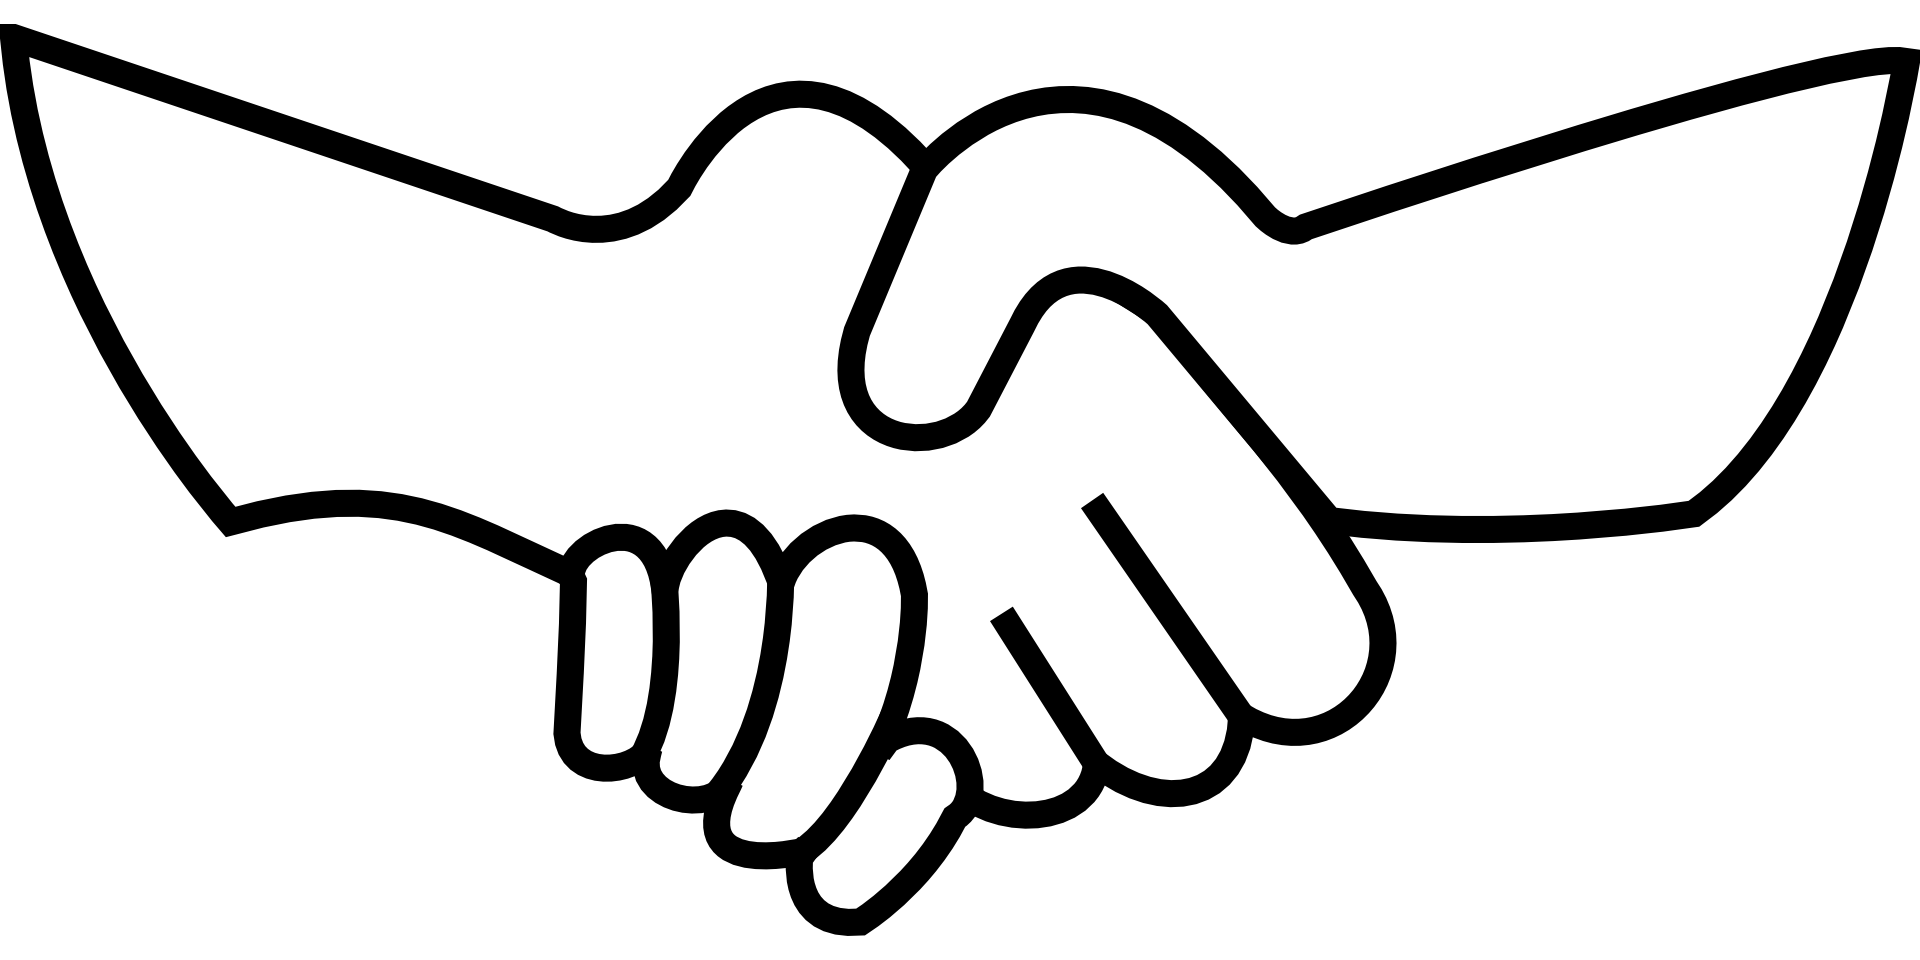 Holding hands praying clip. Handshake clipart black and white